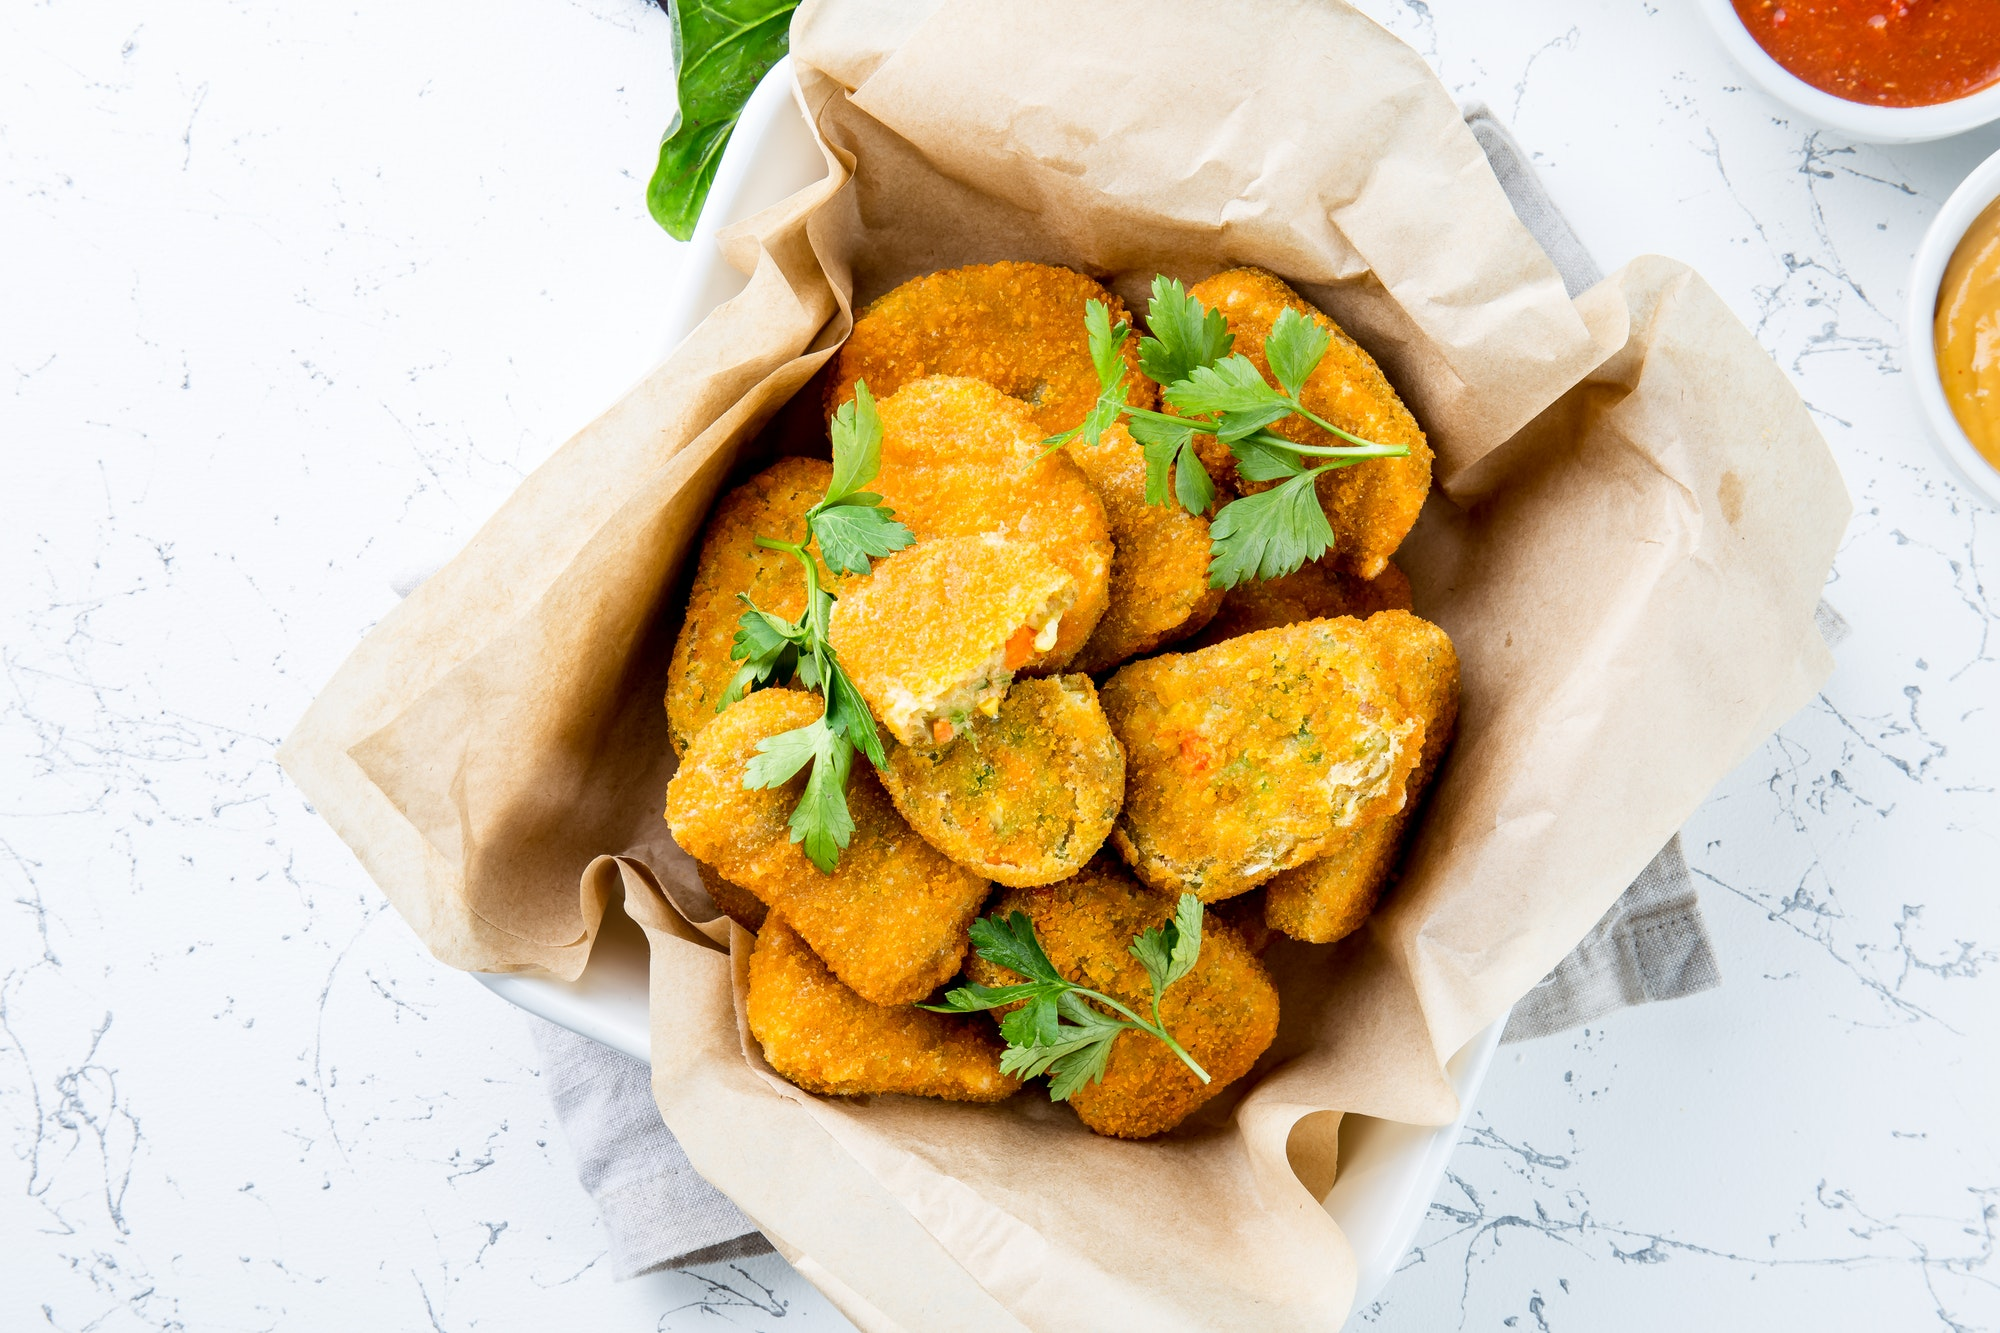 Vegetarian Nuggets with Carrots, Cauliflower and Spinach. Vegetable Nuggets.